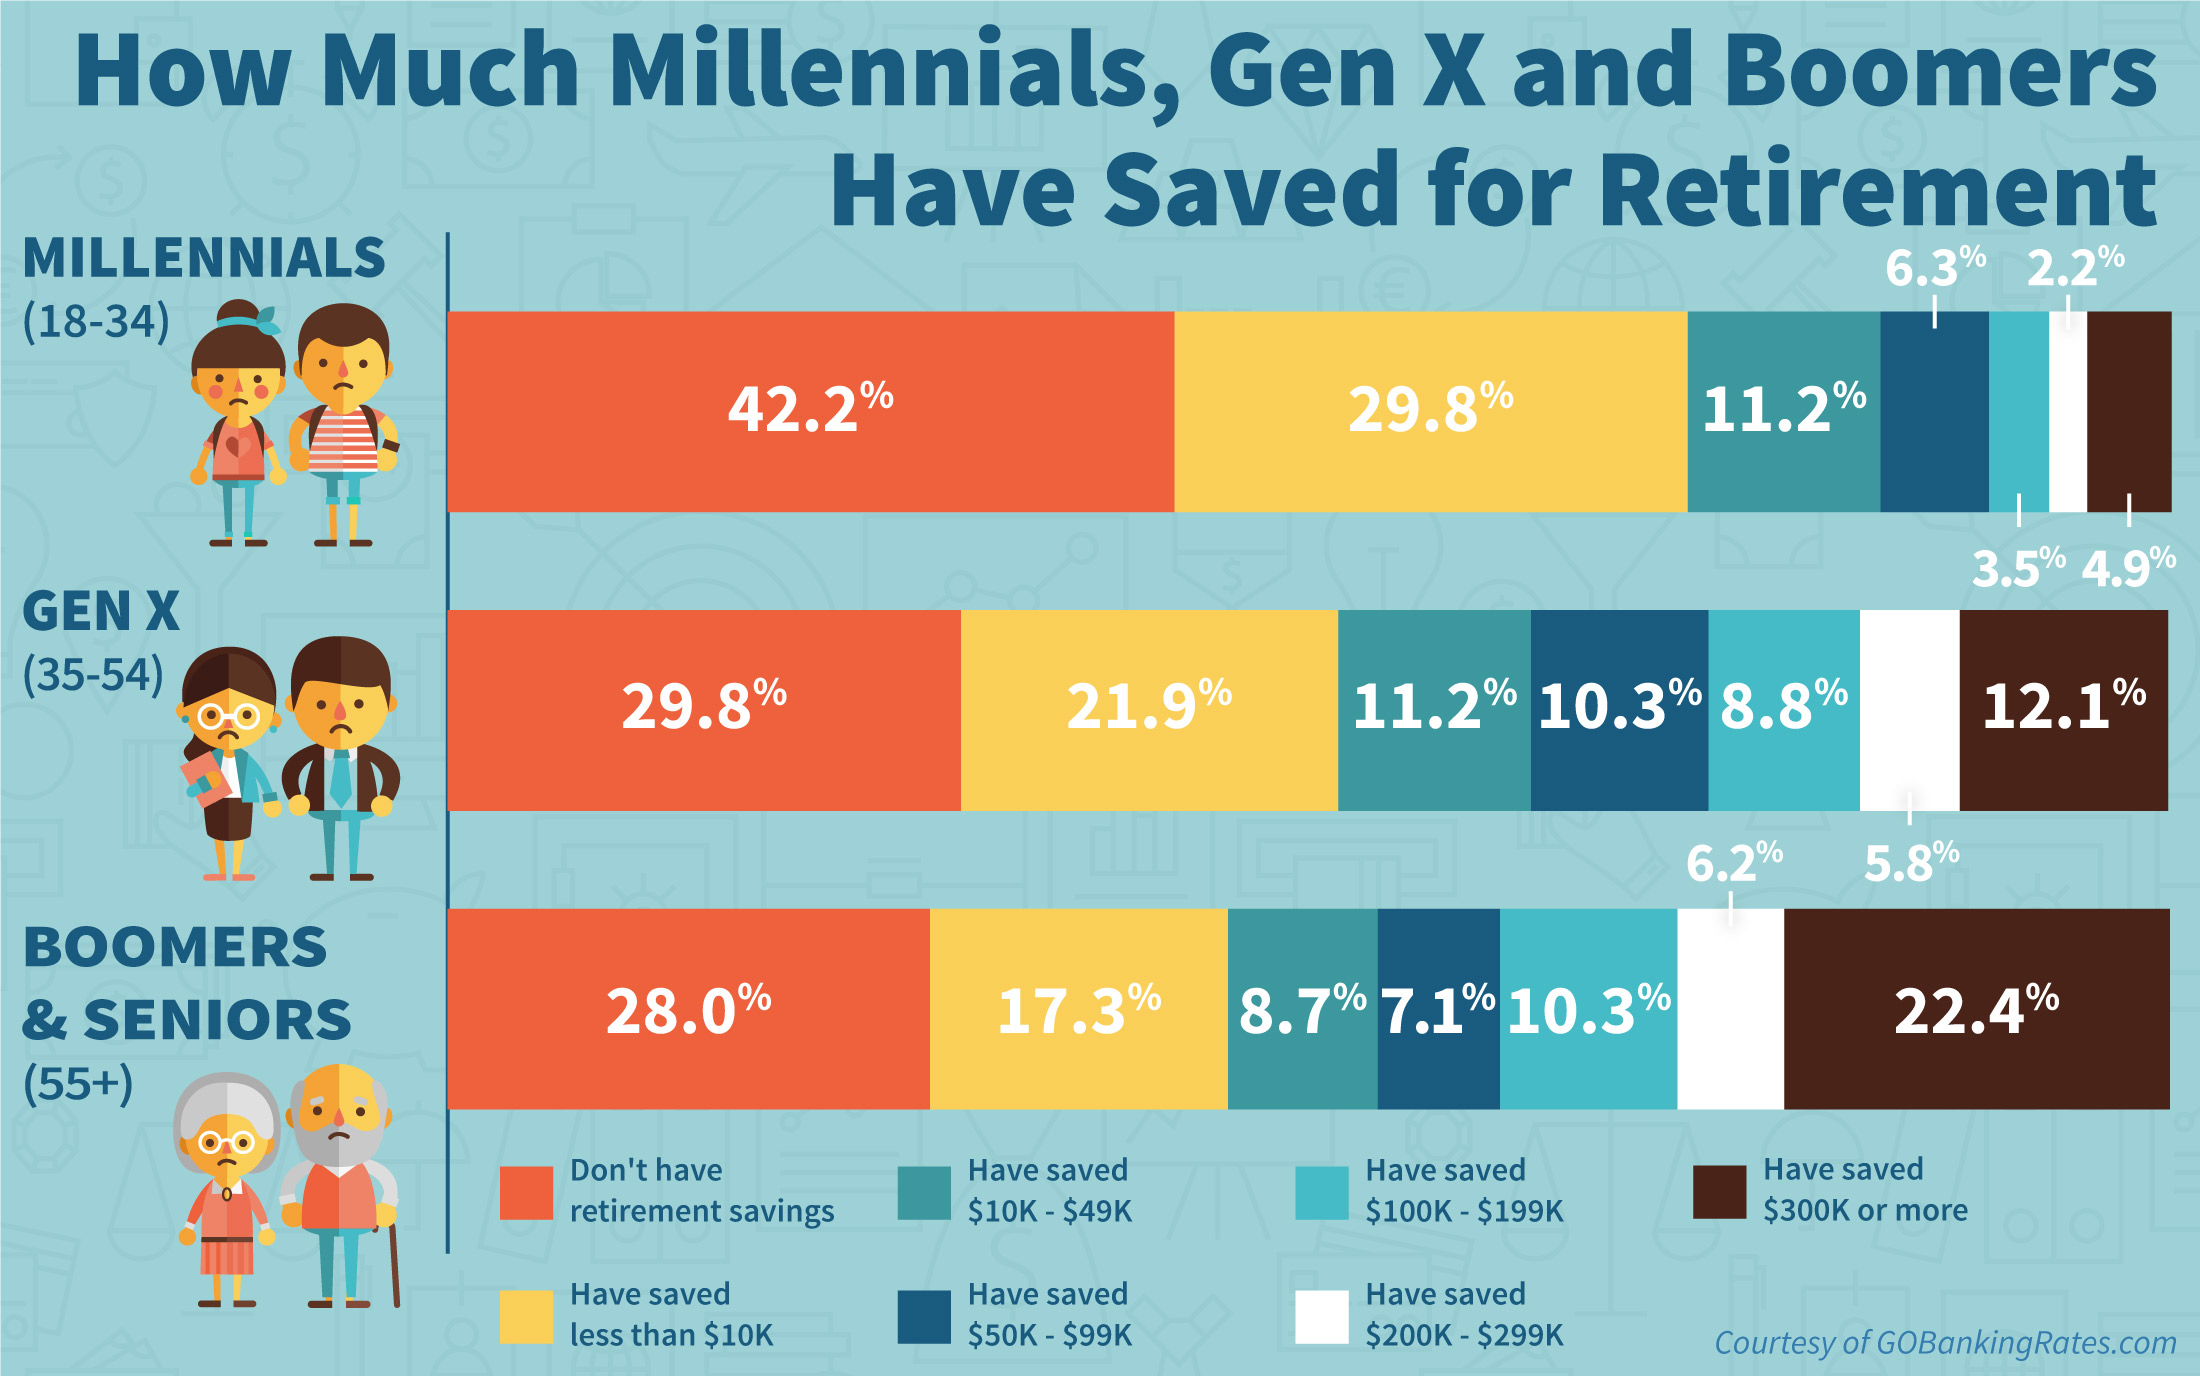 Survey:parison Of How Much Millennials, Gen Xers, Boomer And Seniors  Have Saved